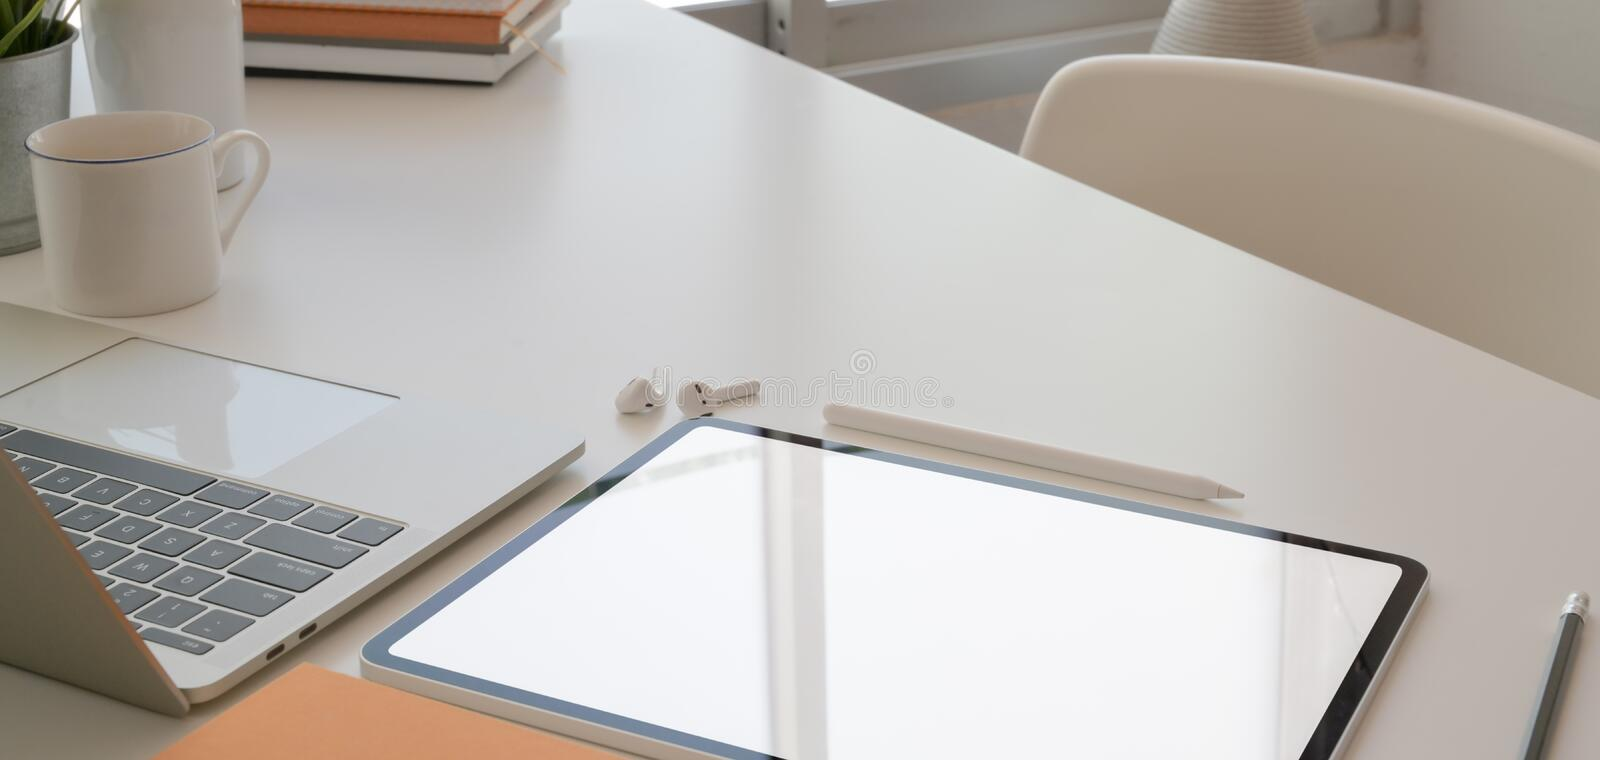 Cropped shot of comfortable workspace with tablet, laptop computer and office supplies royalty free stock photography